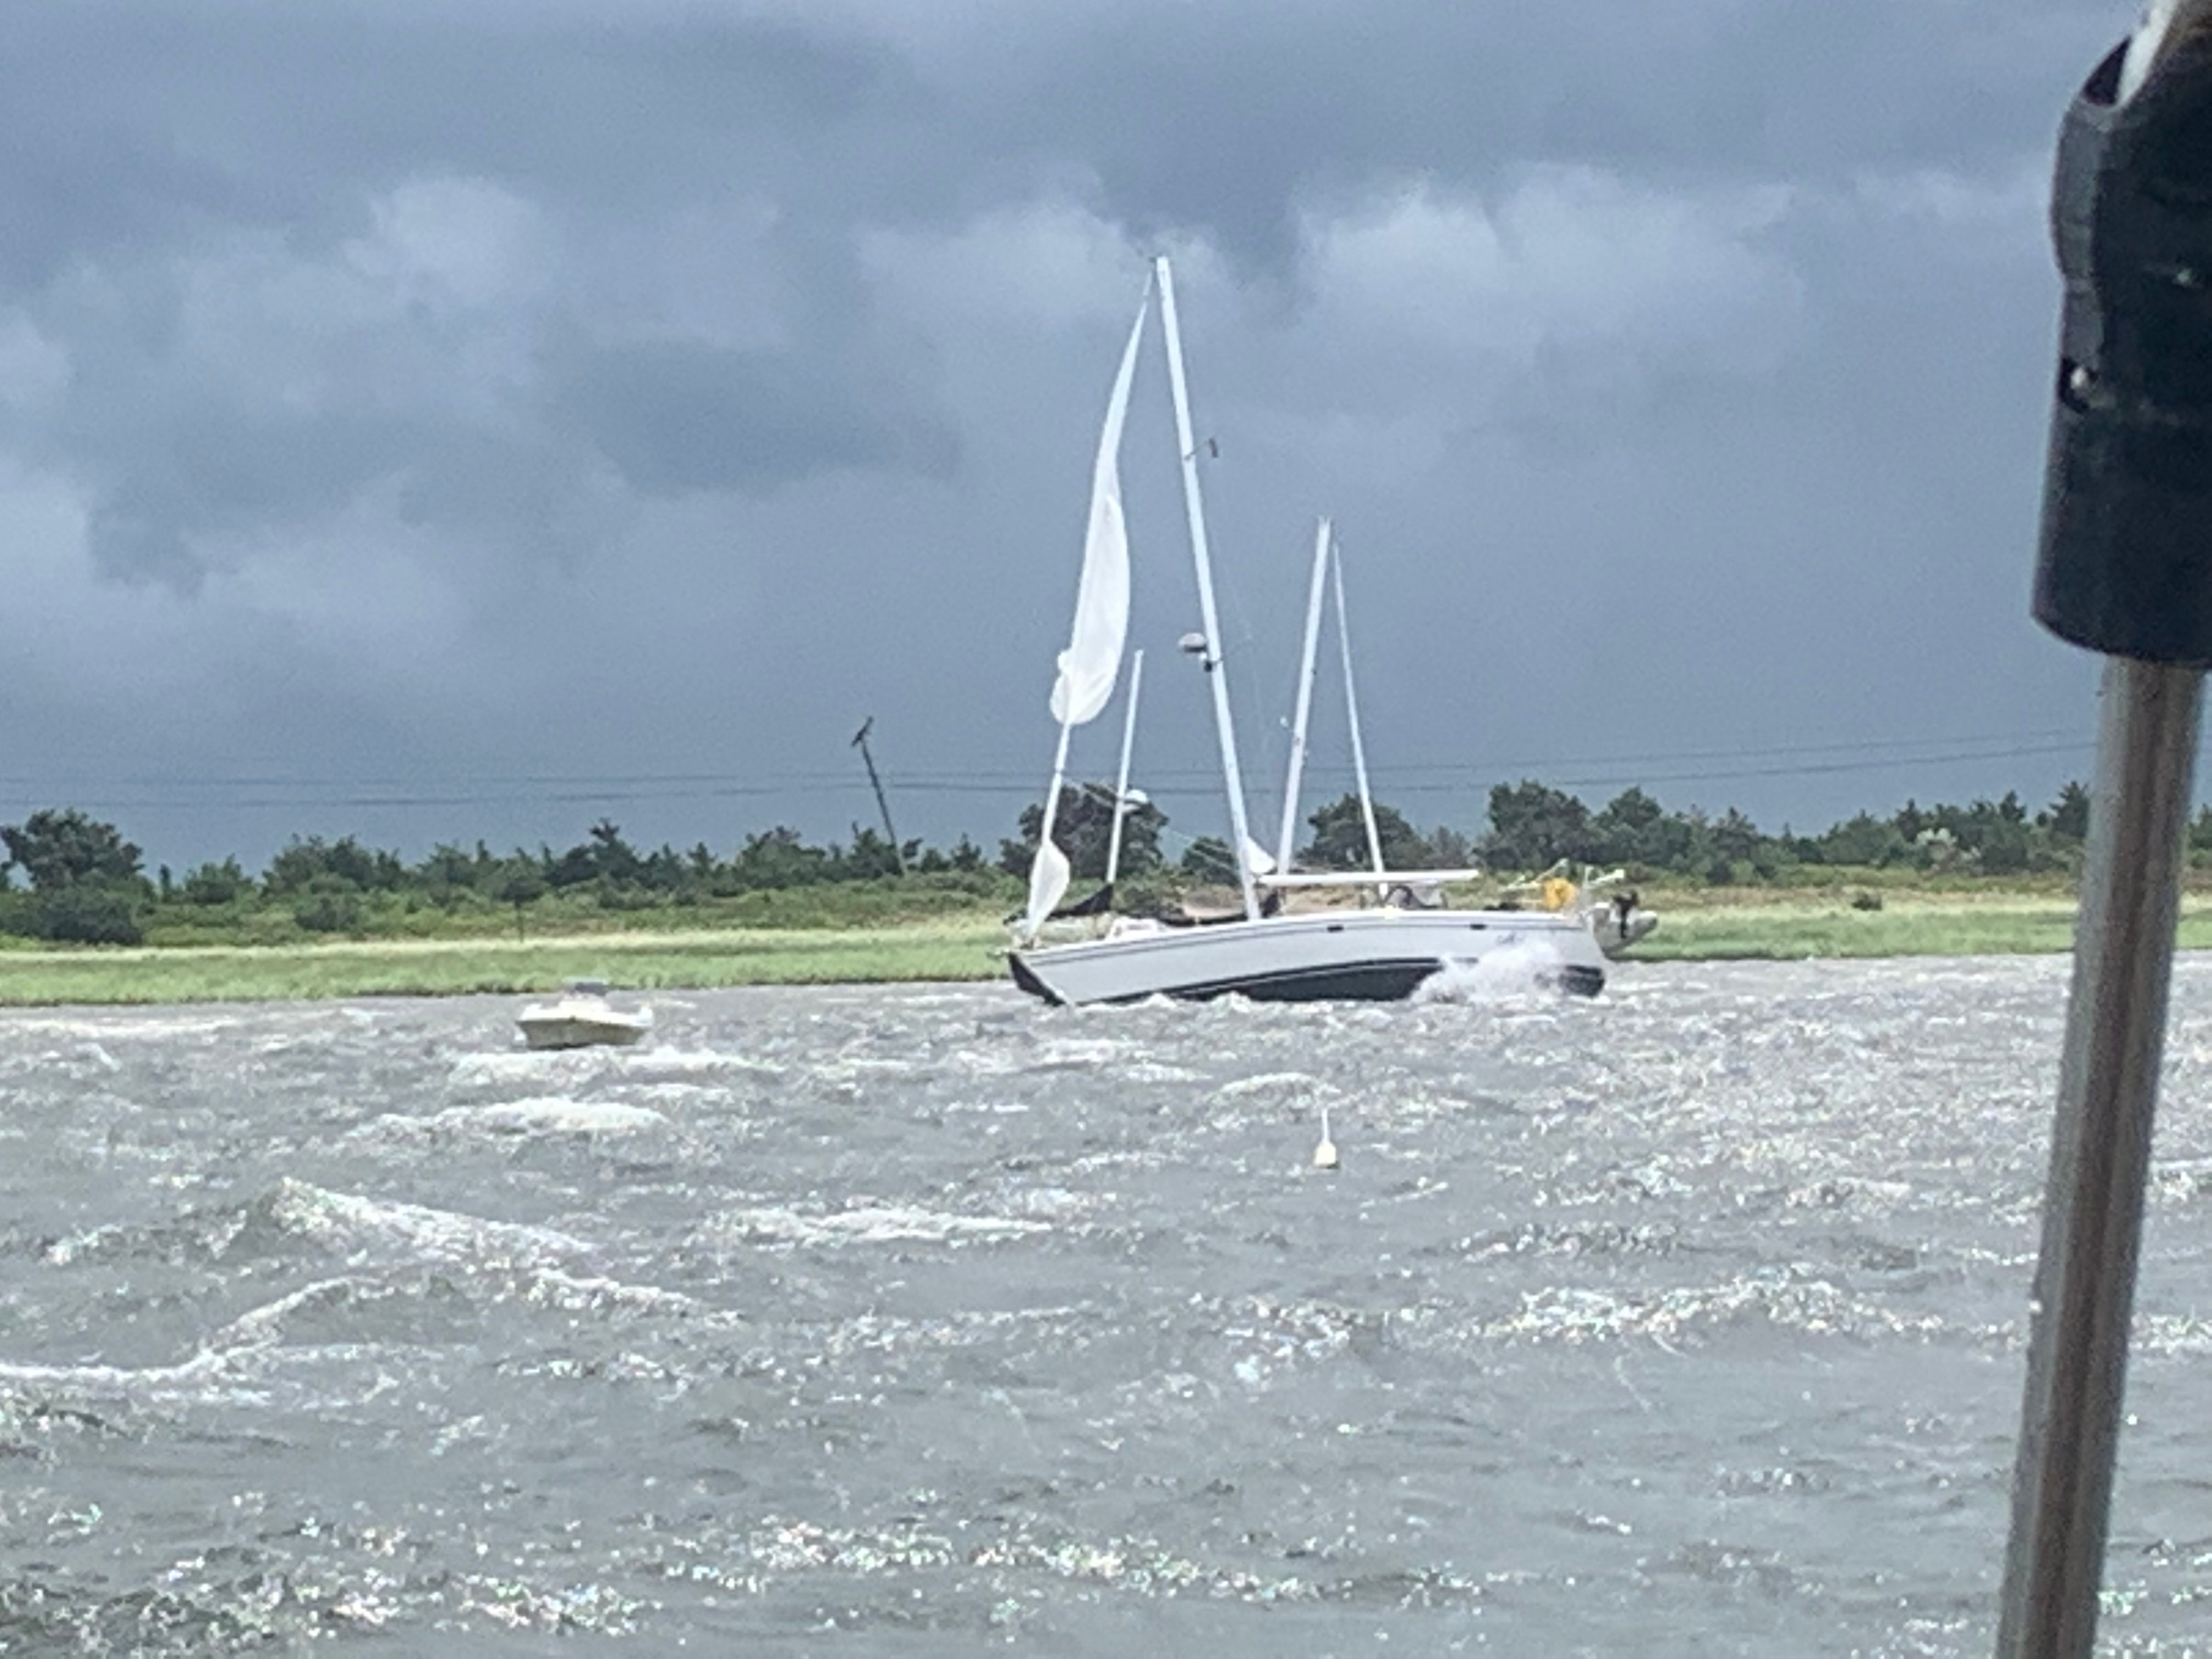 Video: Man survives wild ride on sailboat during tornado on